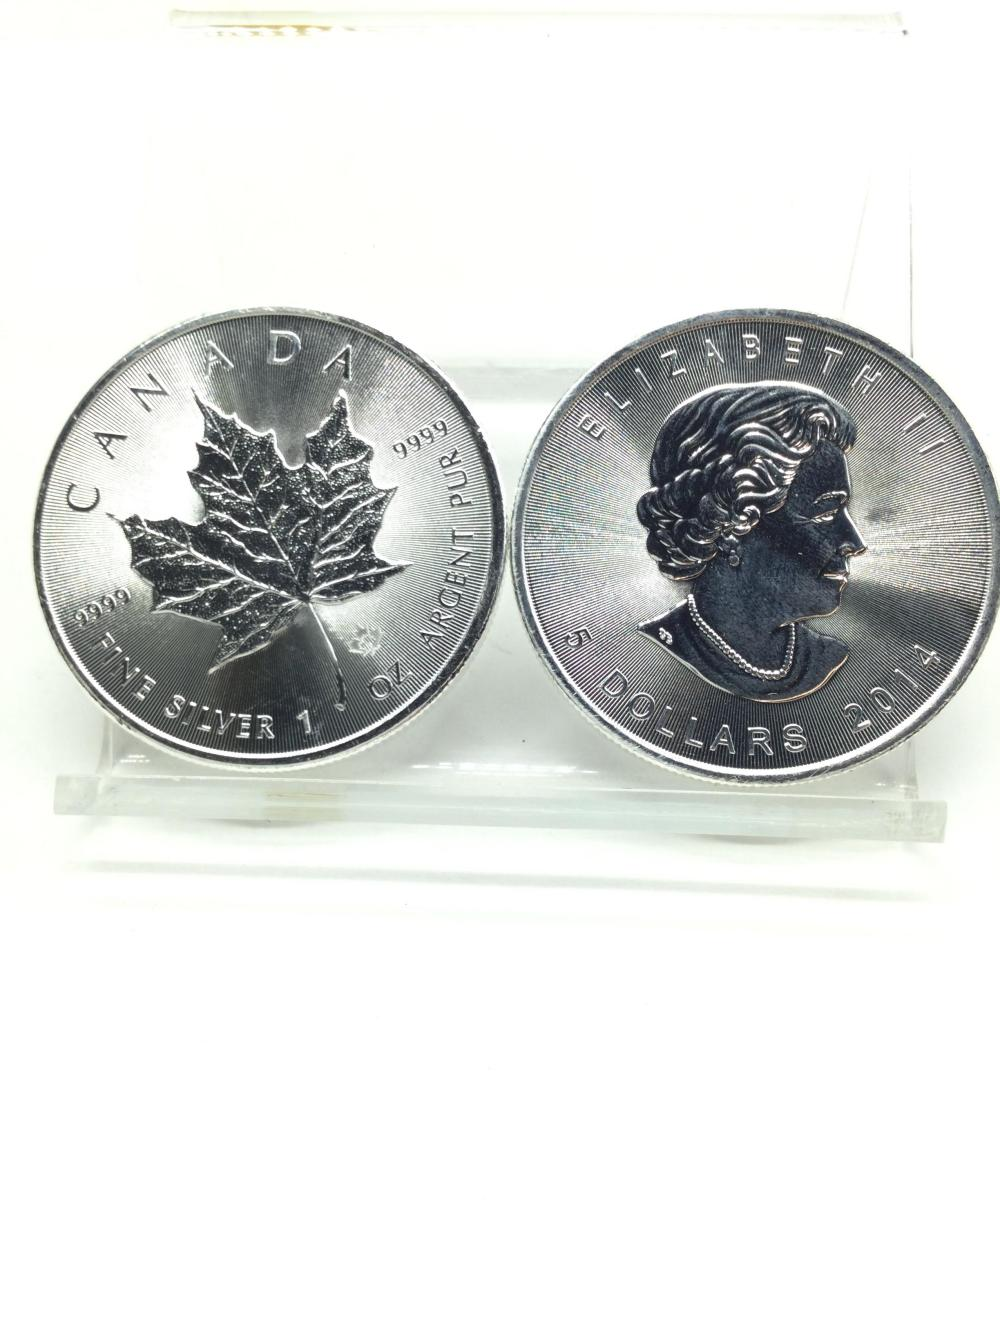 2 Canadian 1 Argent Ounce Silver Rounds